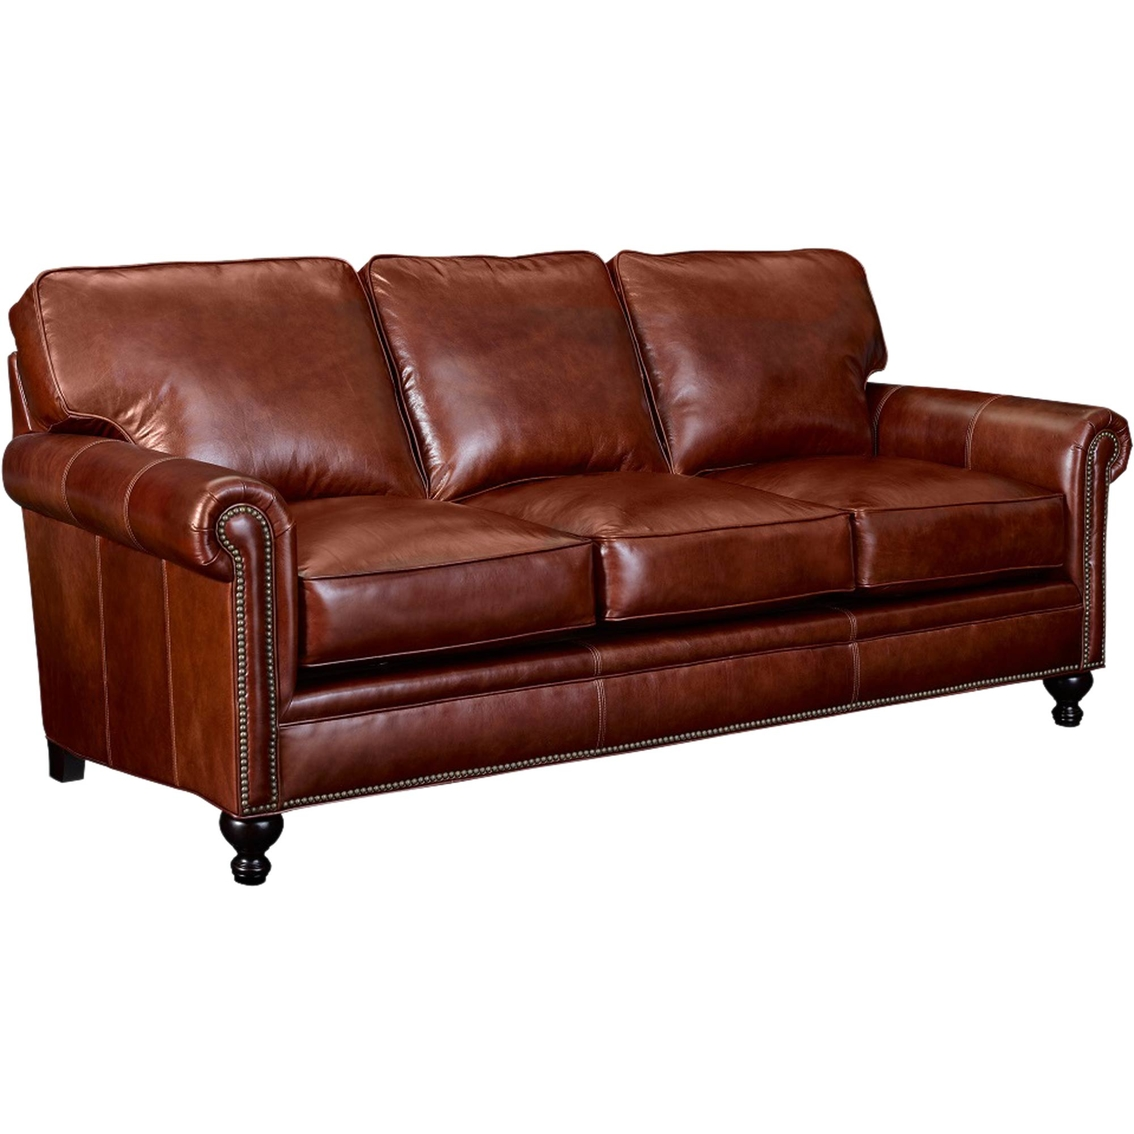 Pleasant Broyhill Harrison Leather Sofa Sofas Couches Home Andrewgaddart Wooden Chair Designs For Living Room Andrewgaddartcom